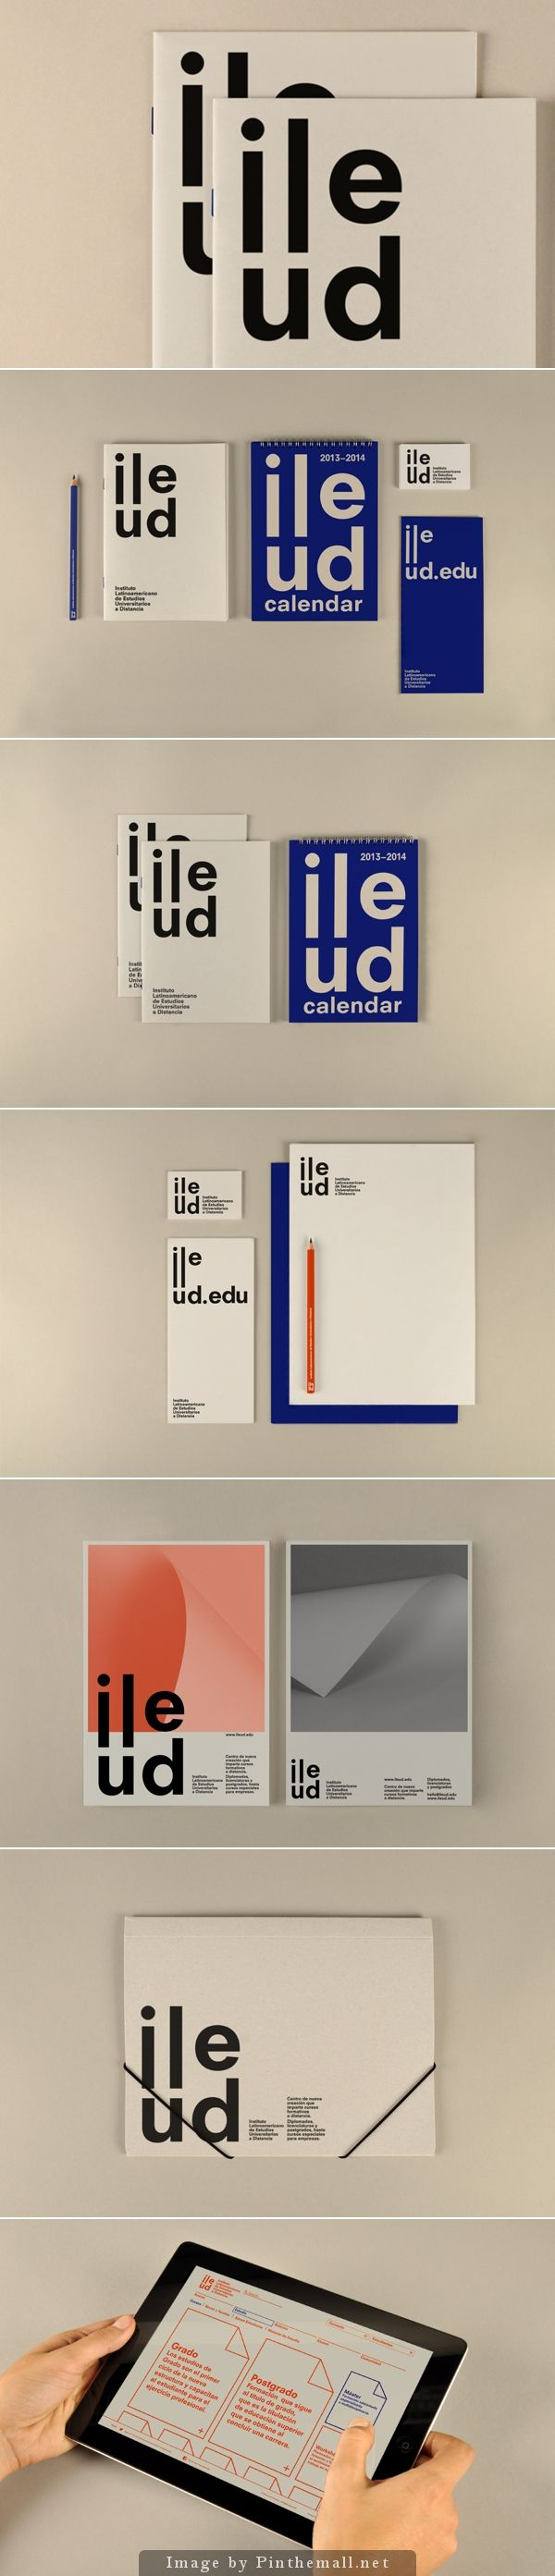 ILEUD by P.A.R, via Behance #brand #identity #stationery